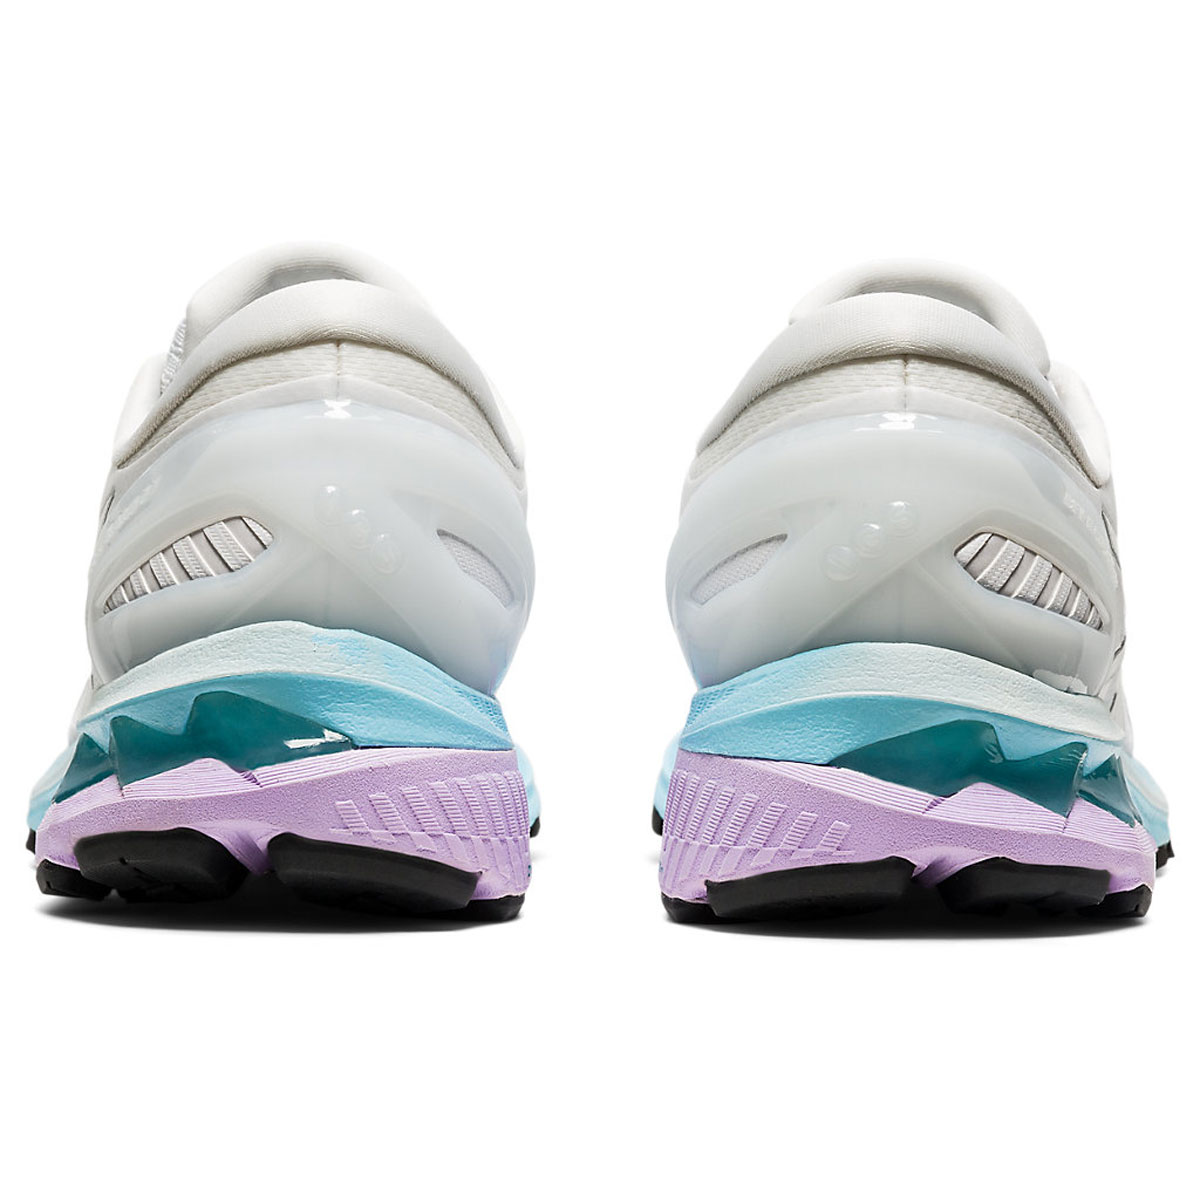 Women's Asics GEL-Kayano 27 Running Shoe - Color: White/Pure Silv (Regular Width) - Size: 5, White/Pure Silver, large, image 5